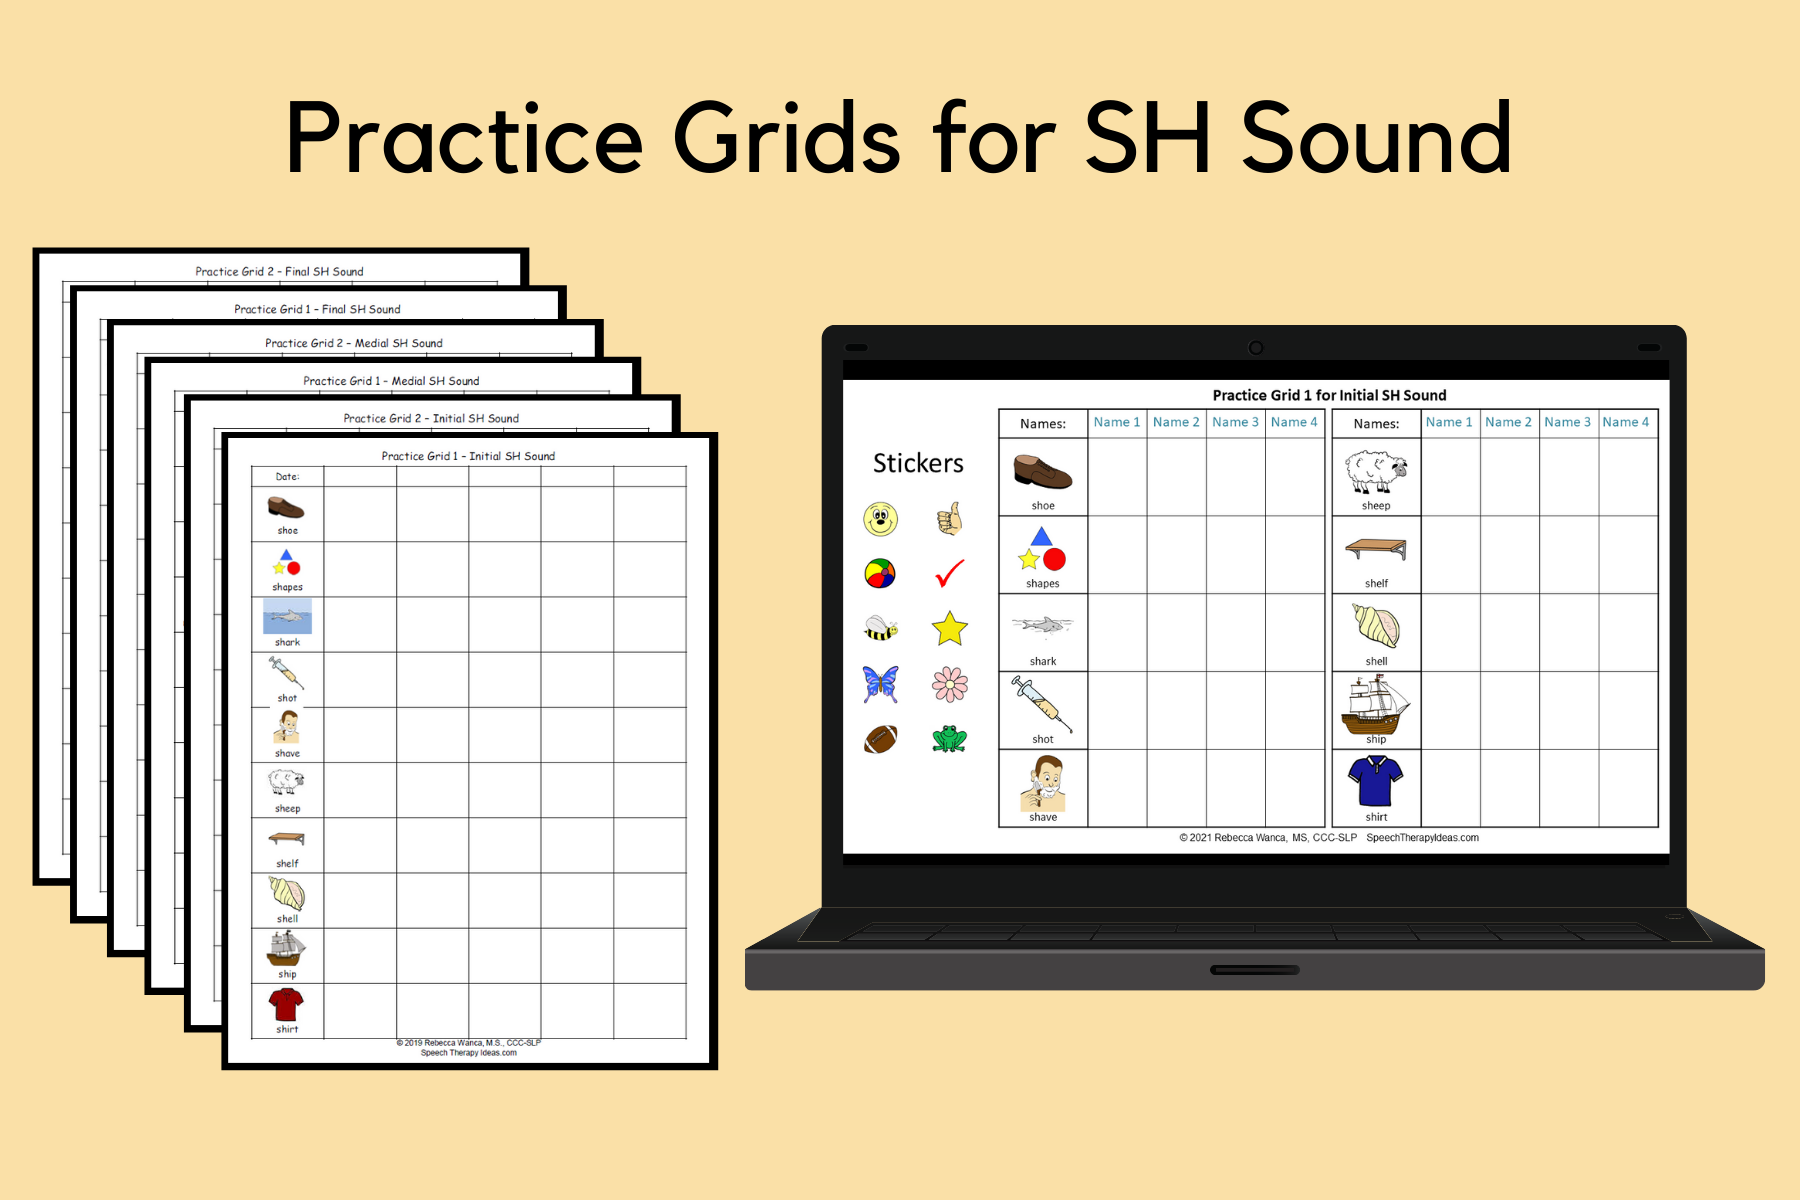 Practice Grids For SH Sound